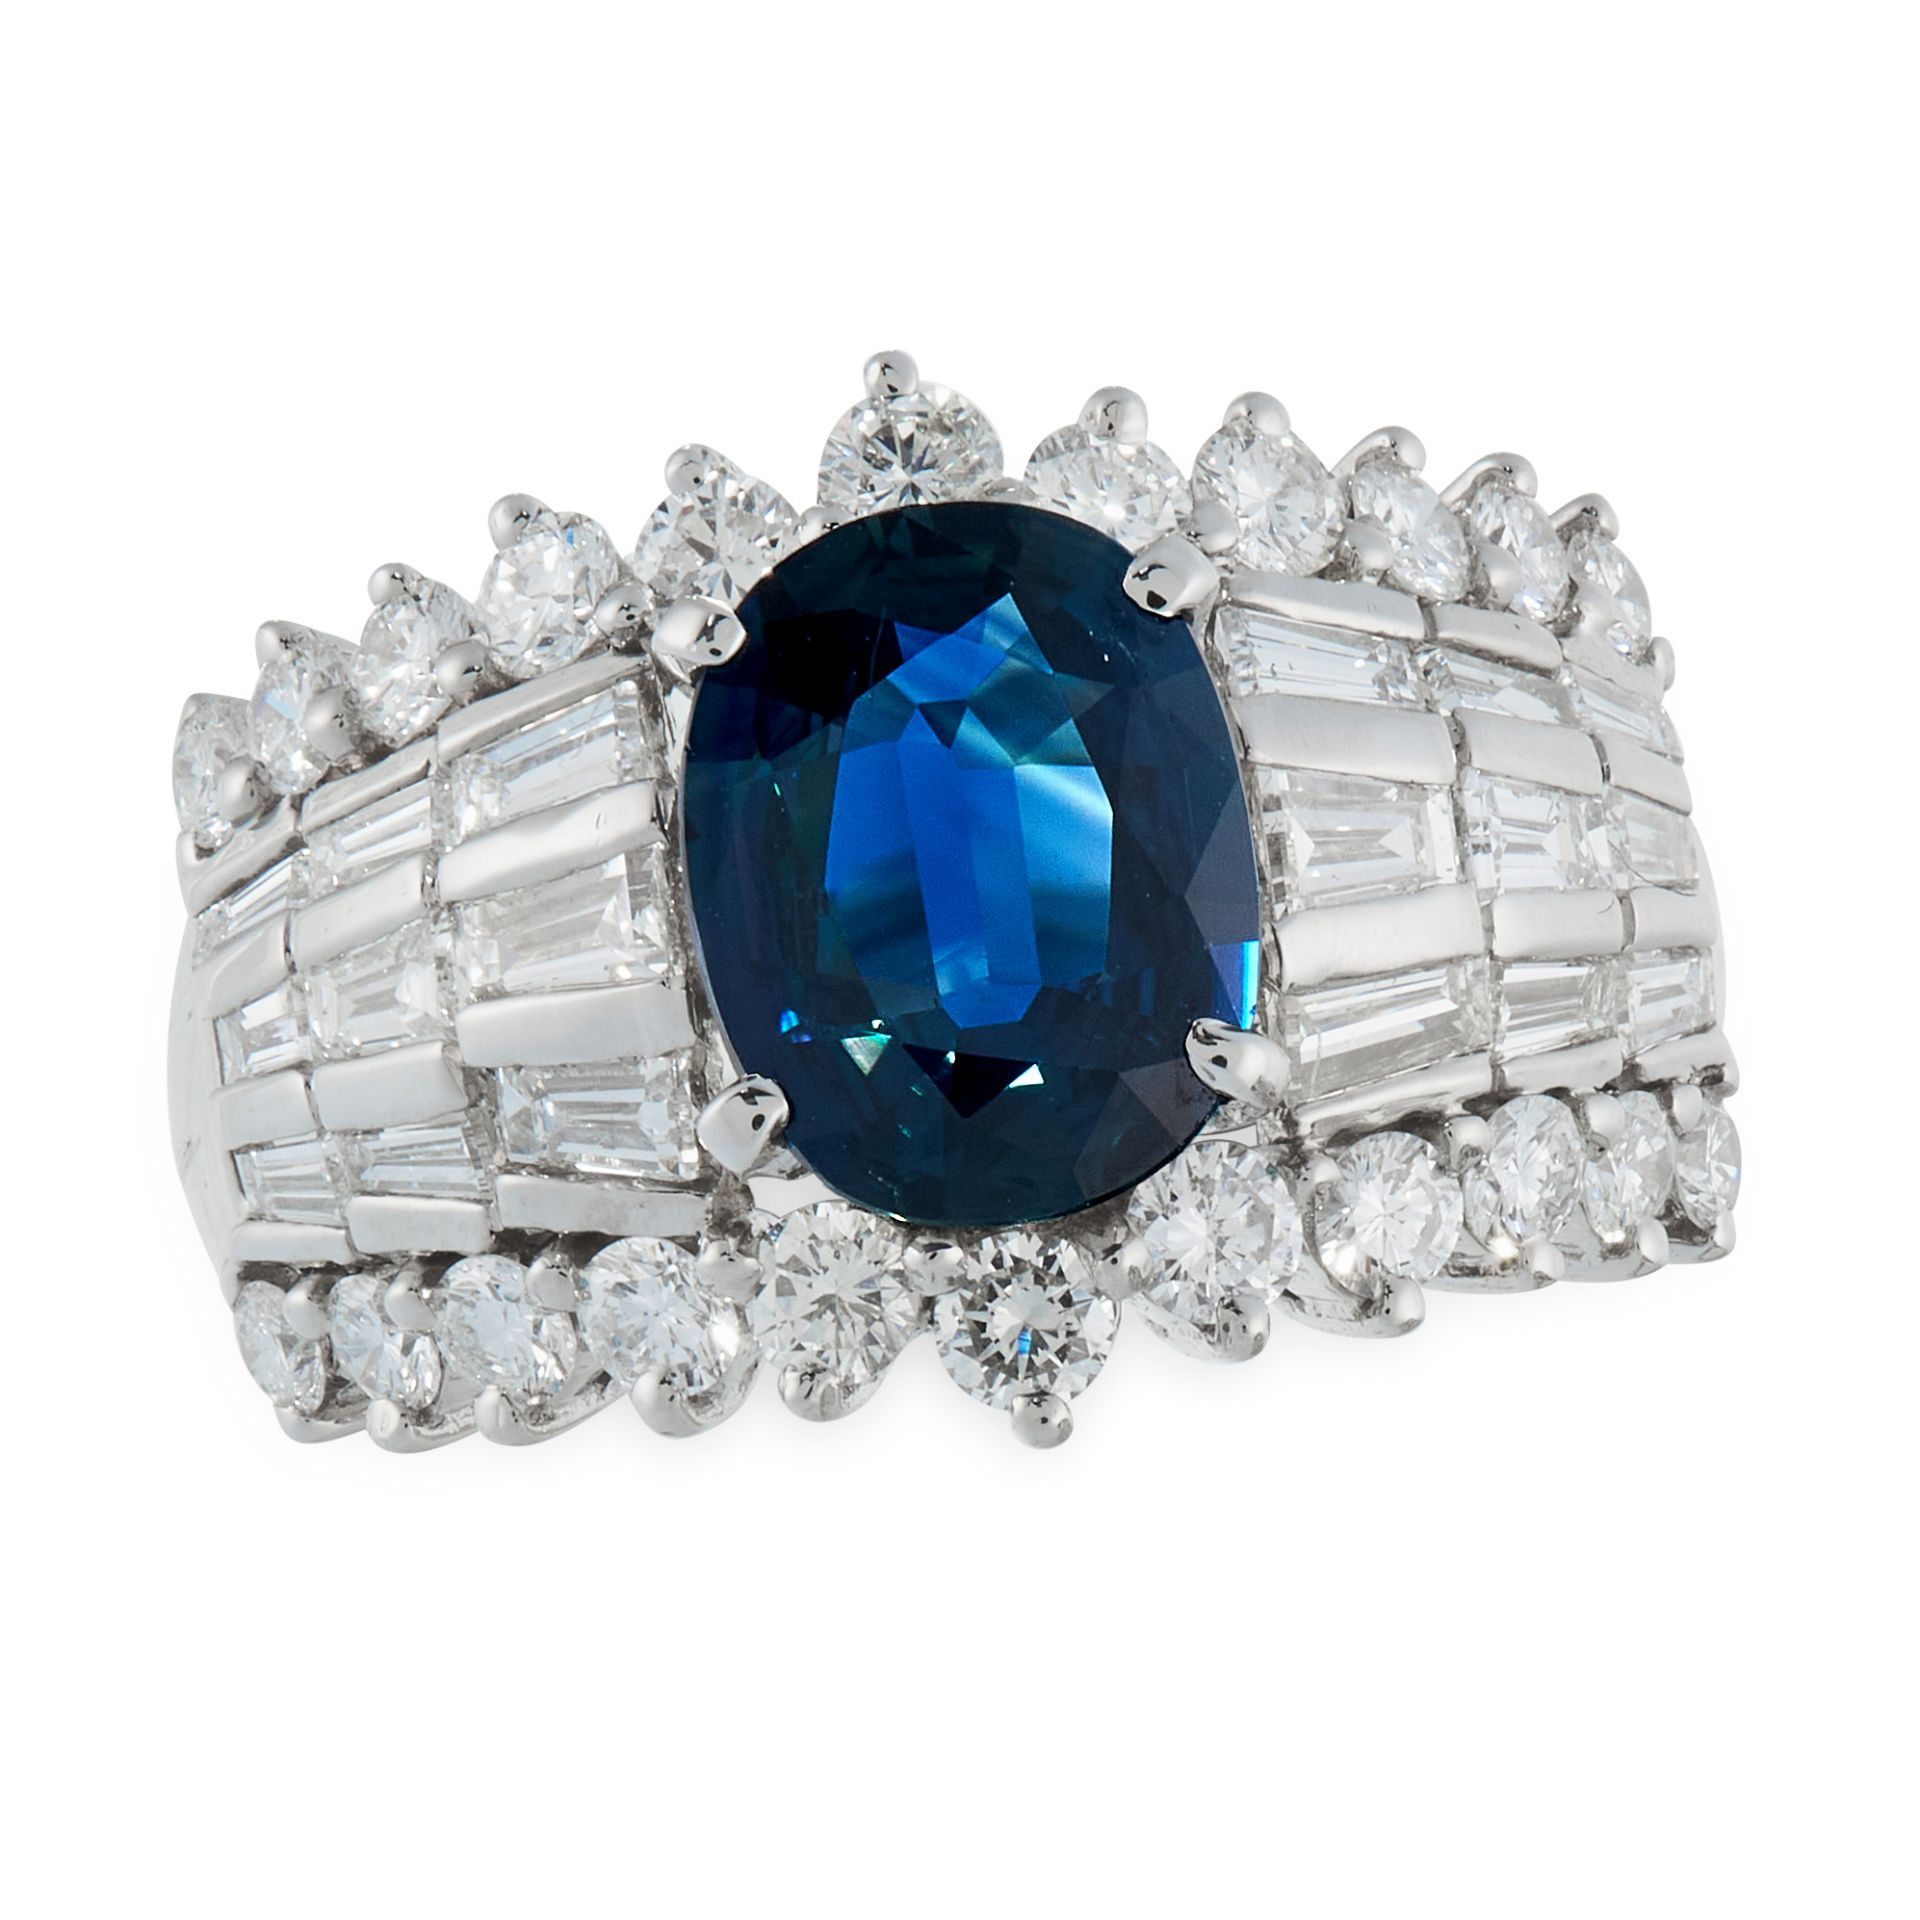 AN UNHEATED SAPPHIRE AND DIAMOND DRESS RING in platinum, set with an oval cut sapphire of 1.87